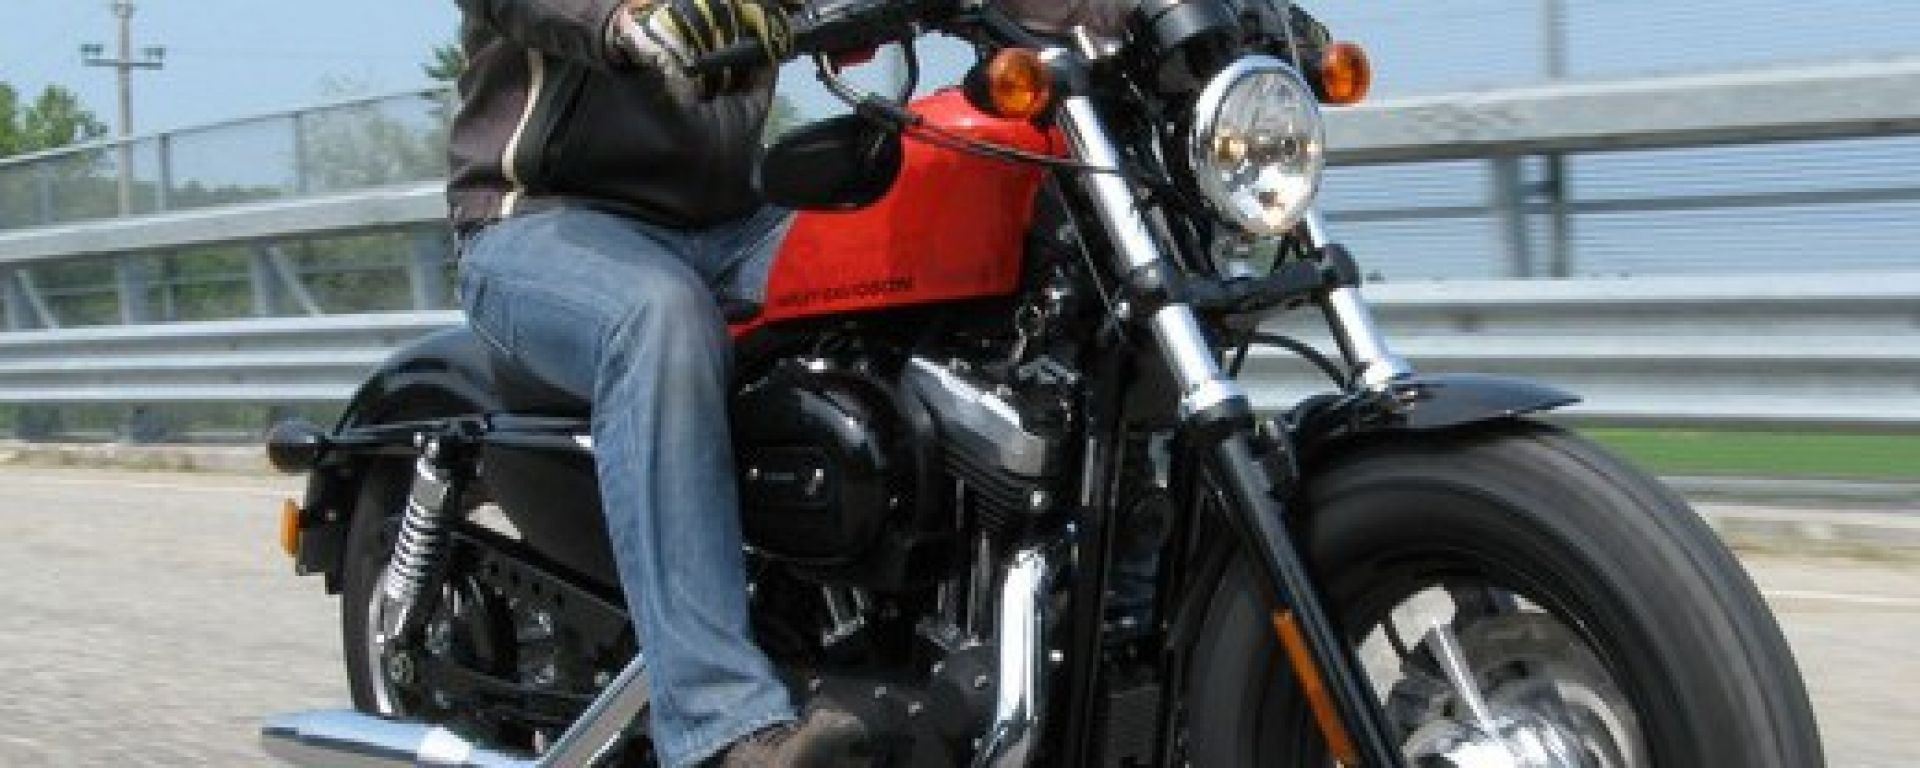 Harley-Davidson Forty Eight